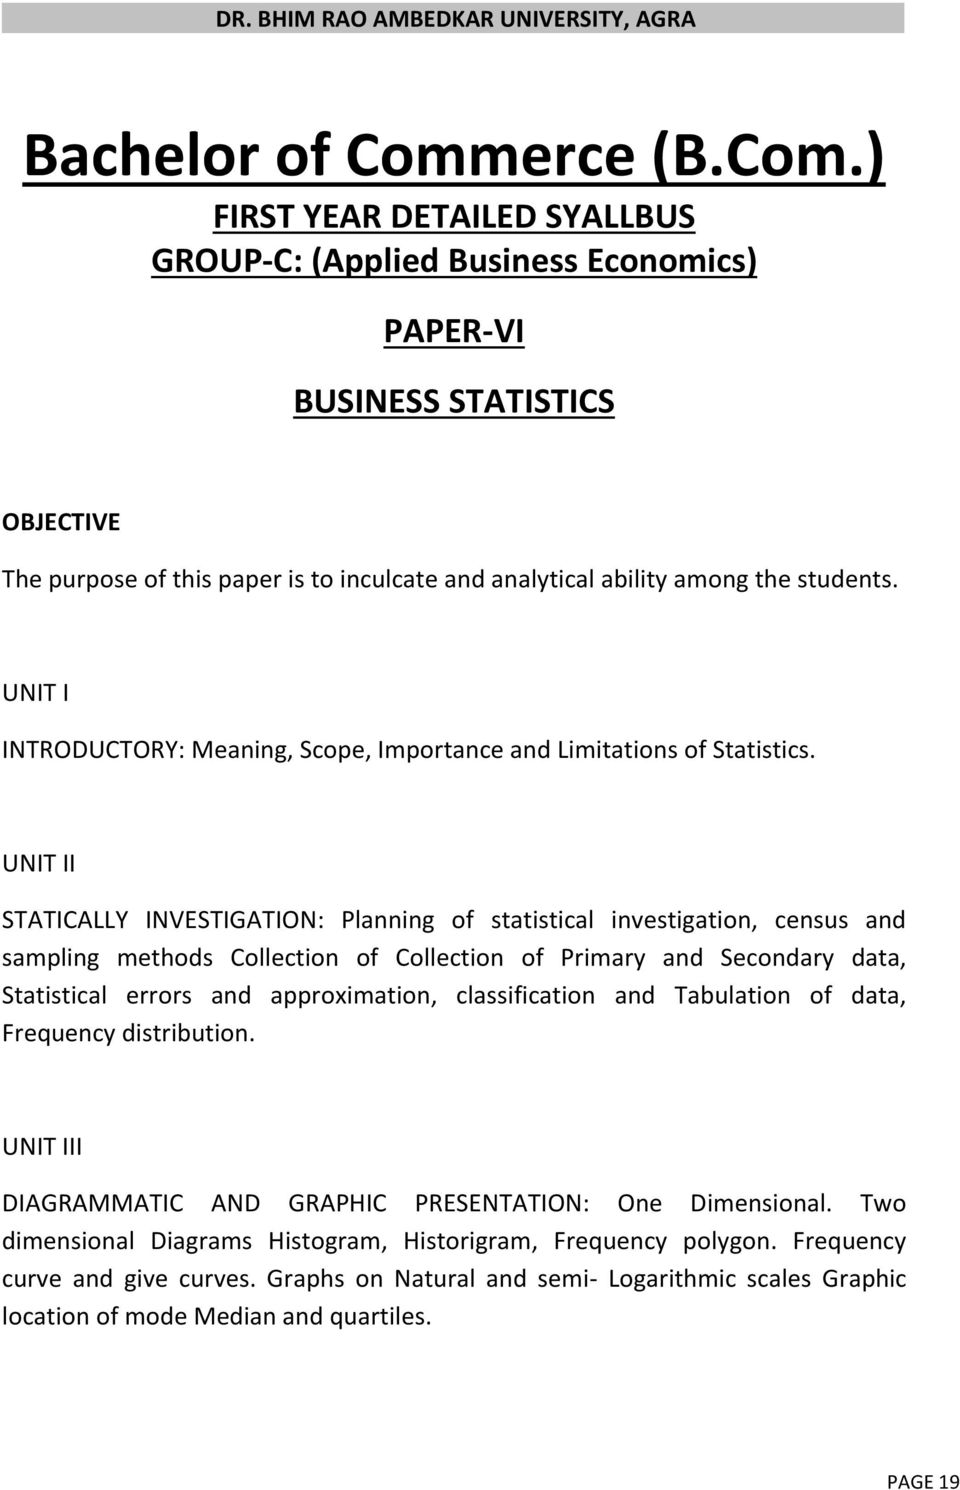 ) FIRST YEAR DETAILED SYALLBUS GROUP-C: (Applied Business Economics) PAPER-VI BUSINESS STATISTICS OBJECTIVE The purpose of this paper is to inculcate and analytical ability among the students.